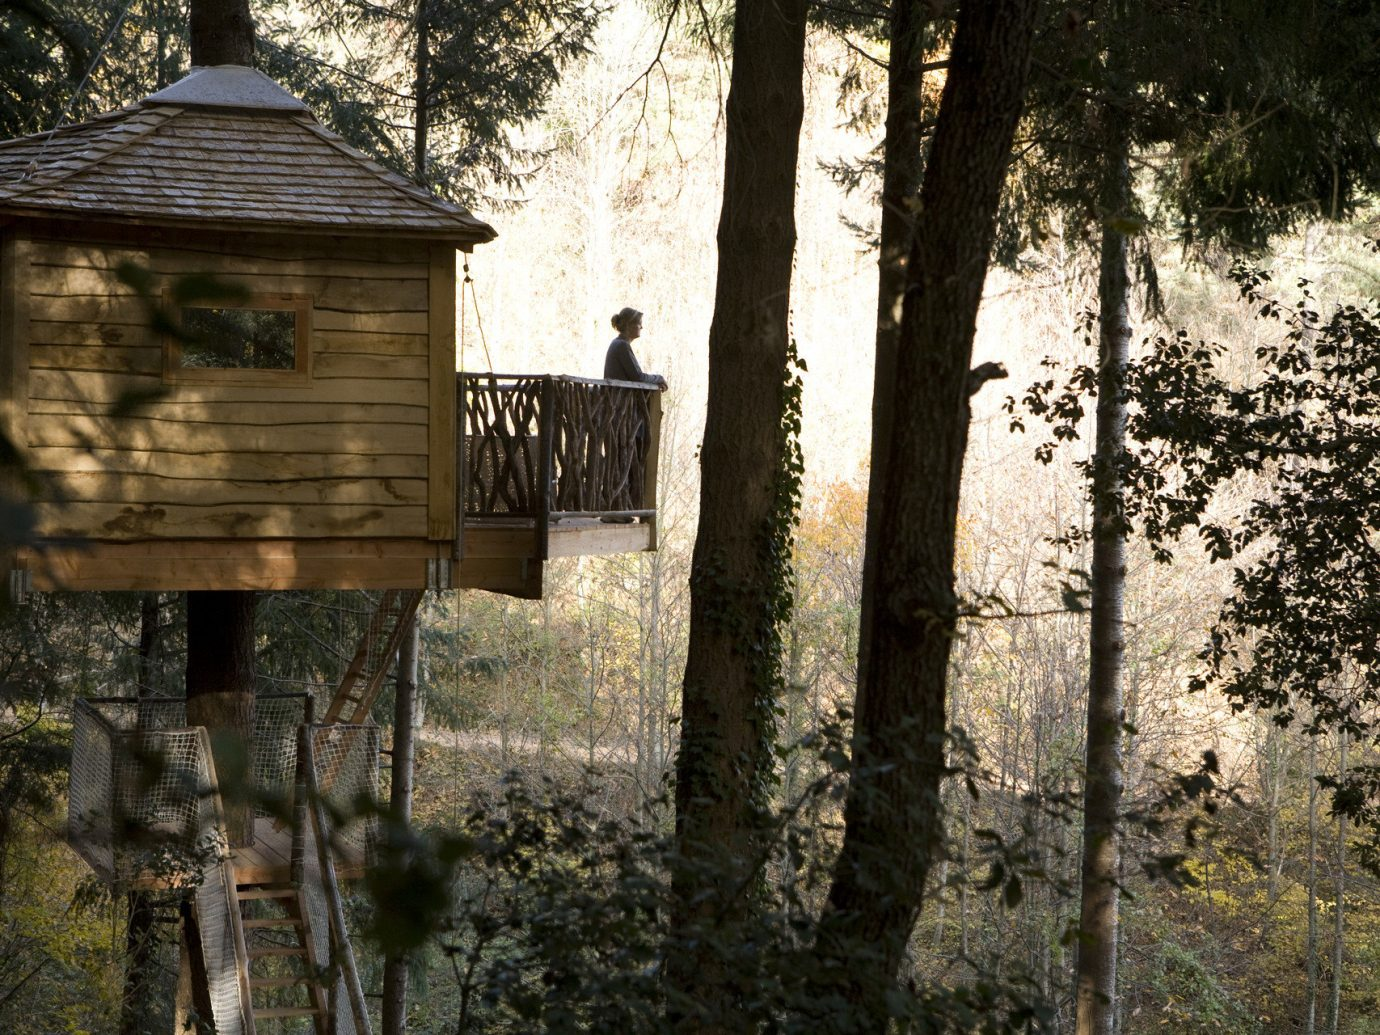 Hotels tree outdoor Nature building house season Forest rural area wood autumn sunlight area wooded surrounded